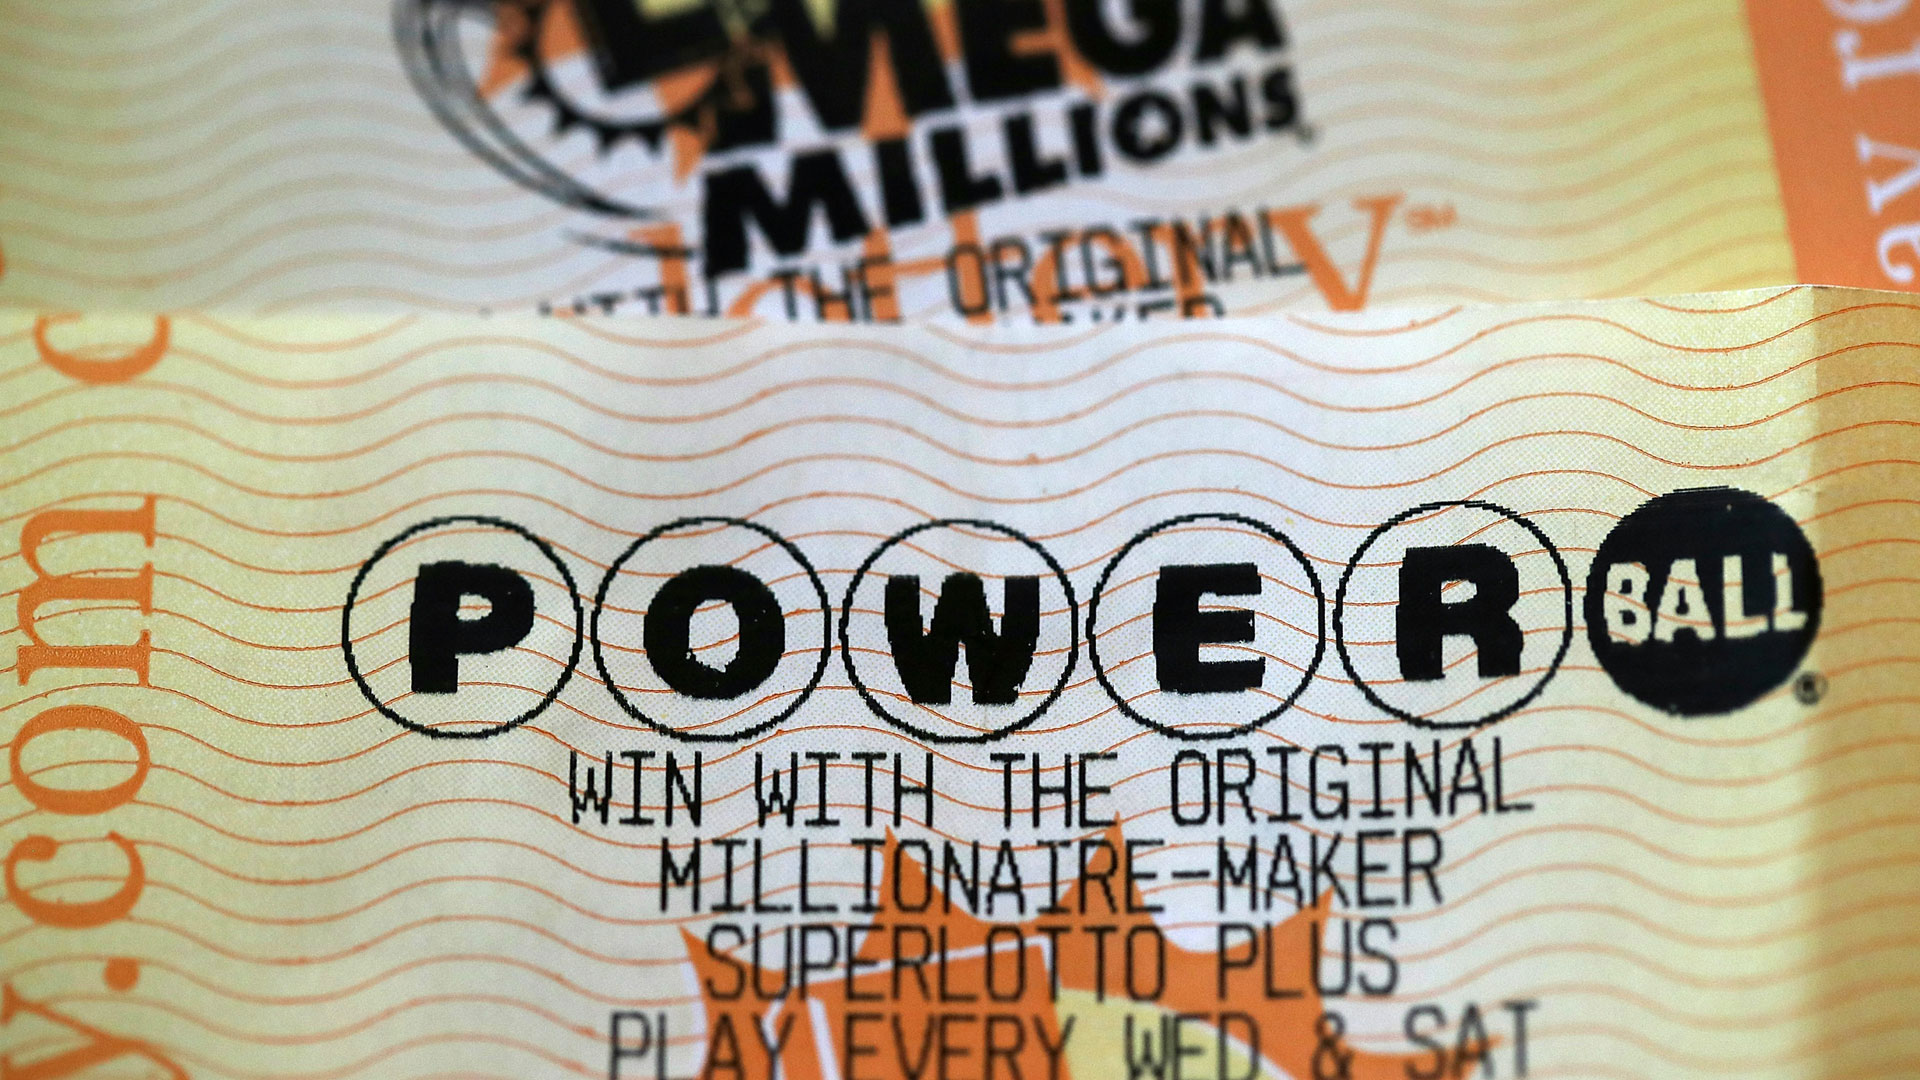 Feeling Lucky Here Are The Winning Numbers For The Powerball Jackpot Worth 410 Million